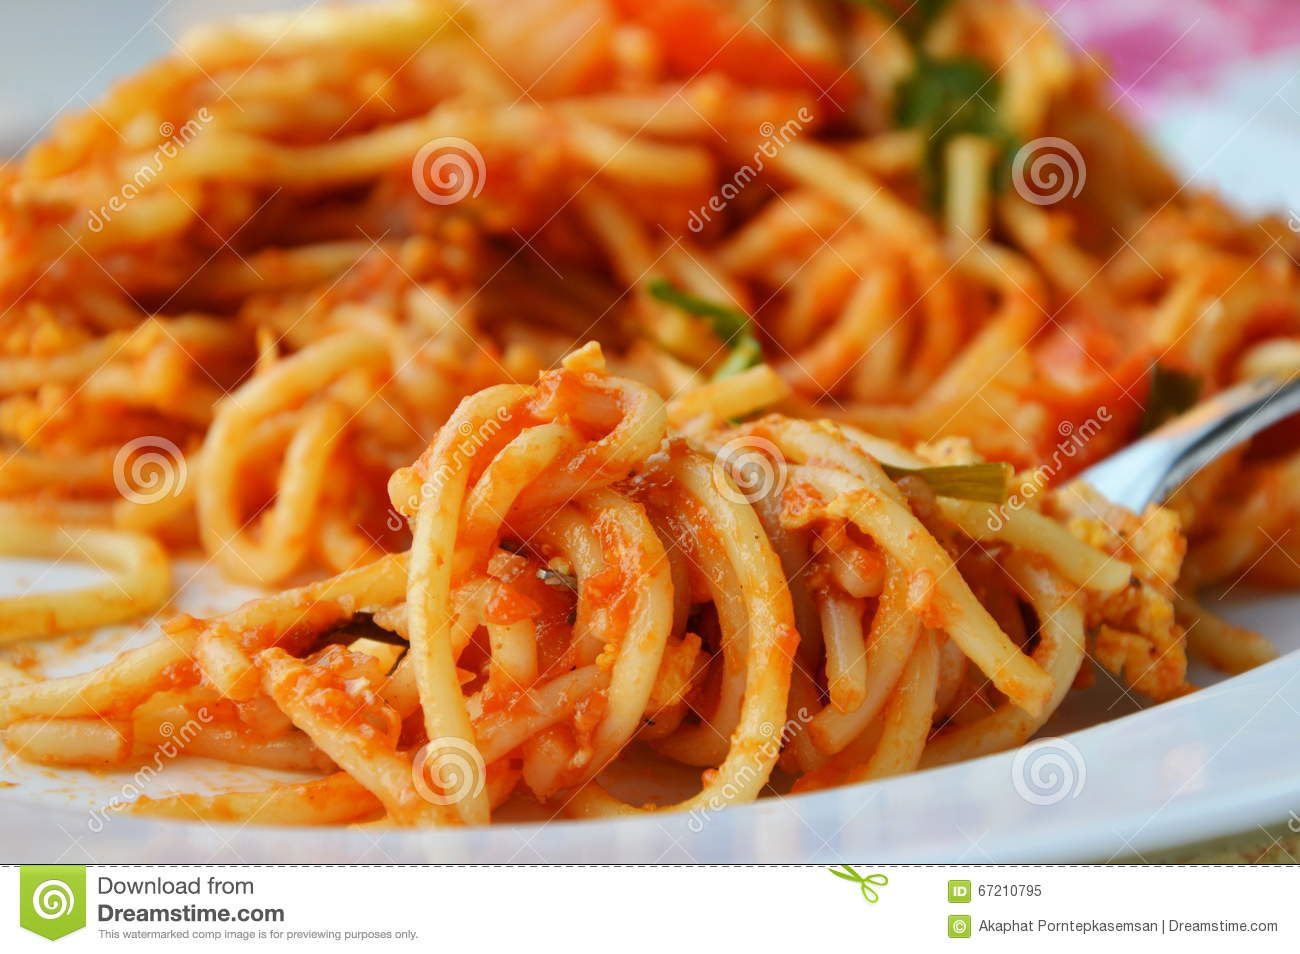 how to make spaghetti with ketchup